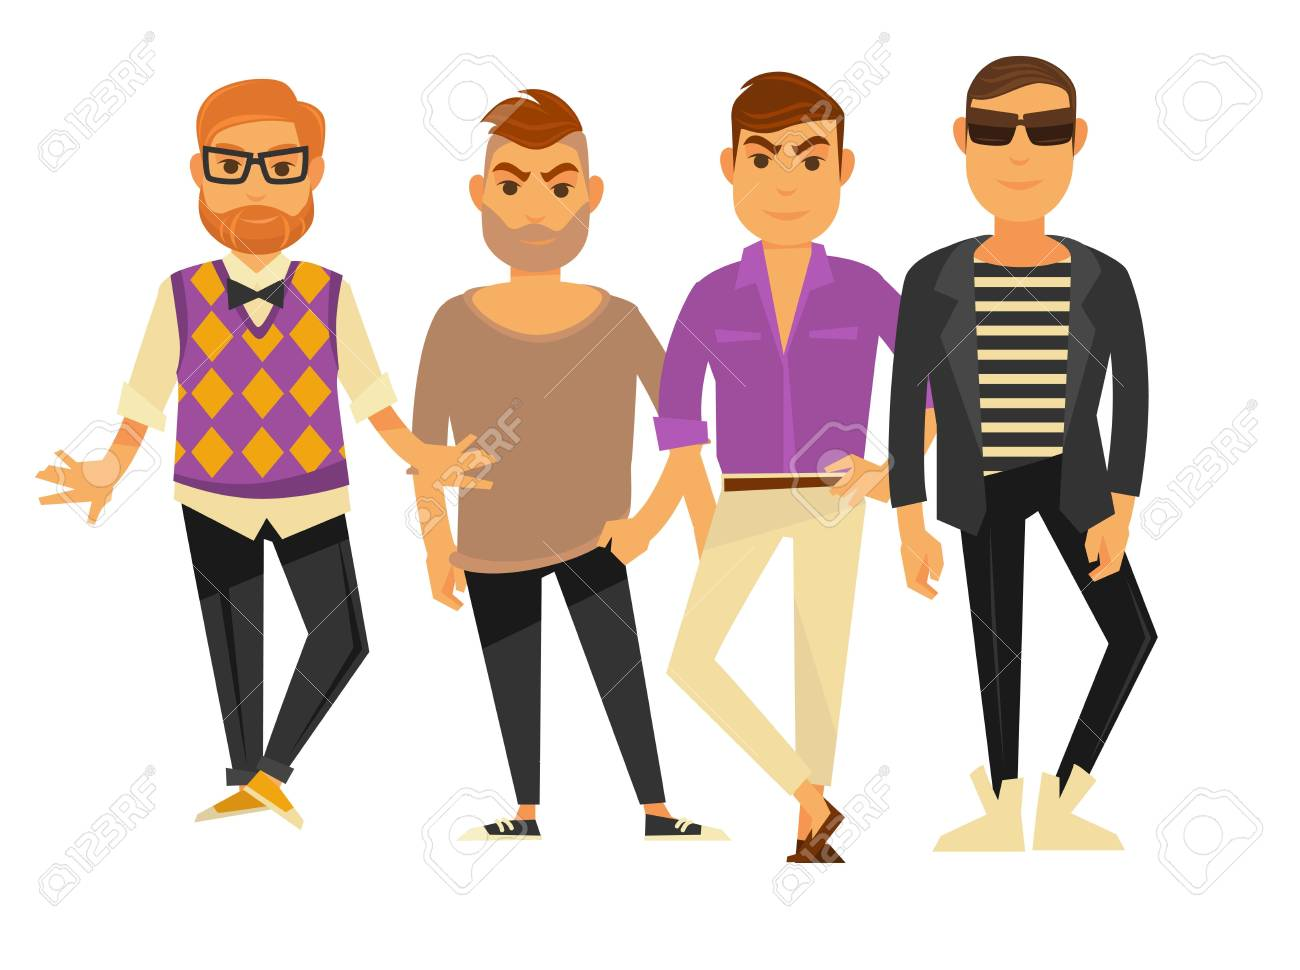 Styles clothing for men forecasting to wear for summer in 2019